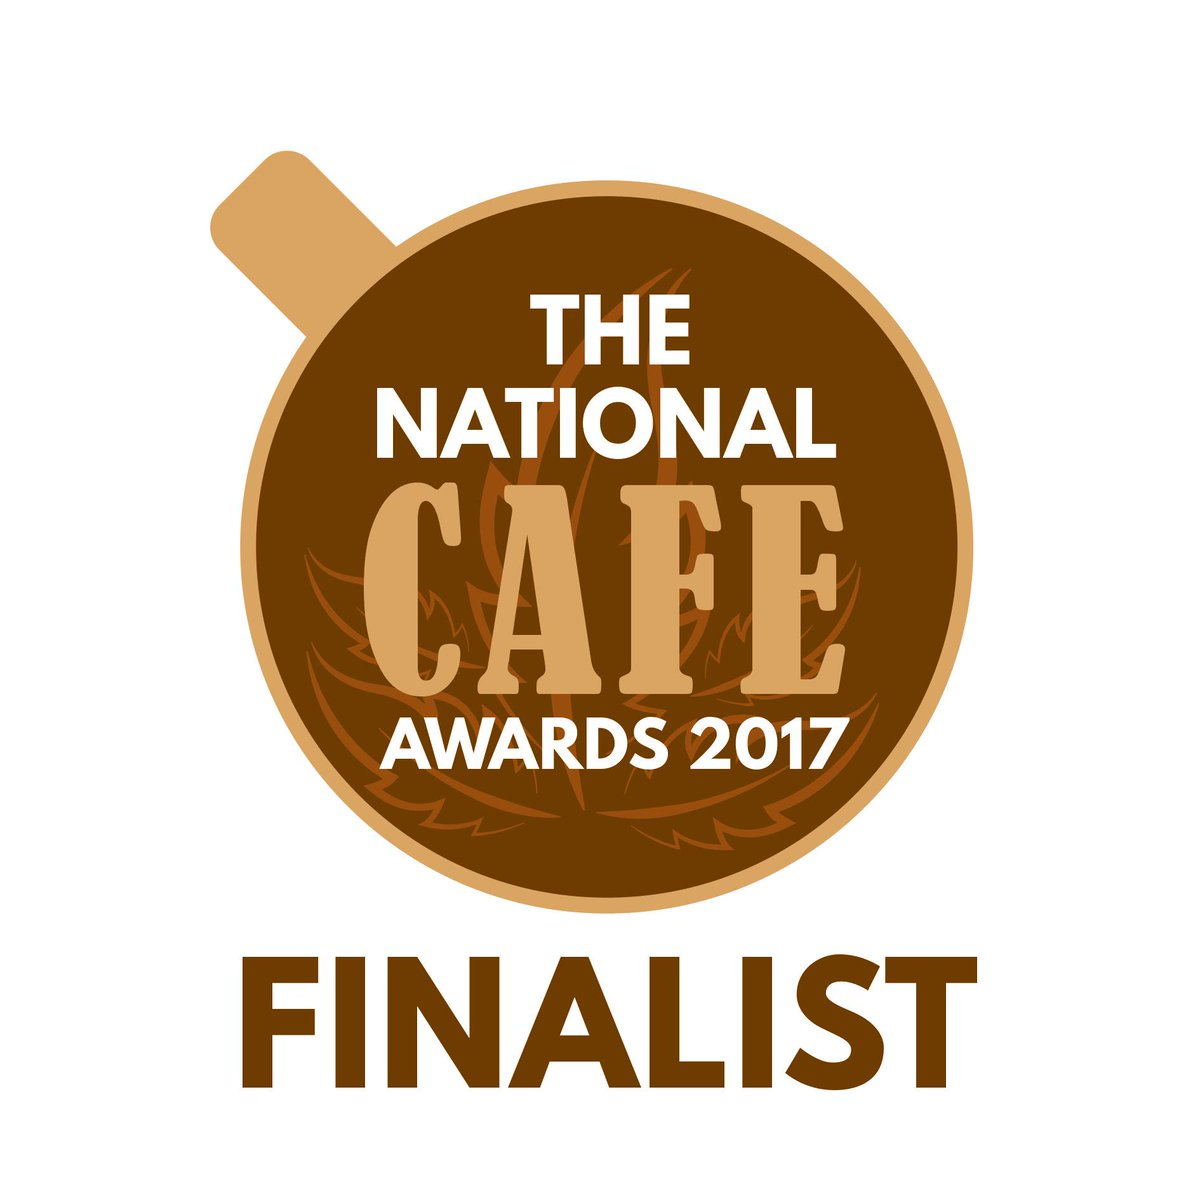 We&#39;ve been shortlisted as a finalist in the Cafe of the Year-West Midlands category at the #NationalCafeAwards! Thanks to all who nominated! <br>http://pic.twitter.com/lillfMH8Yq